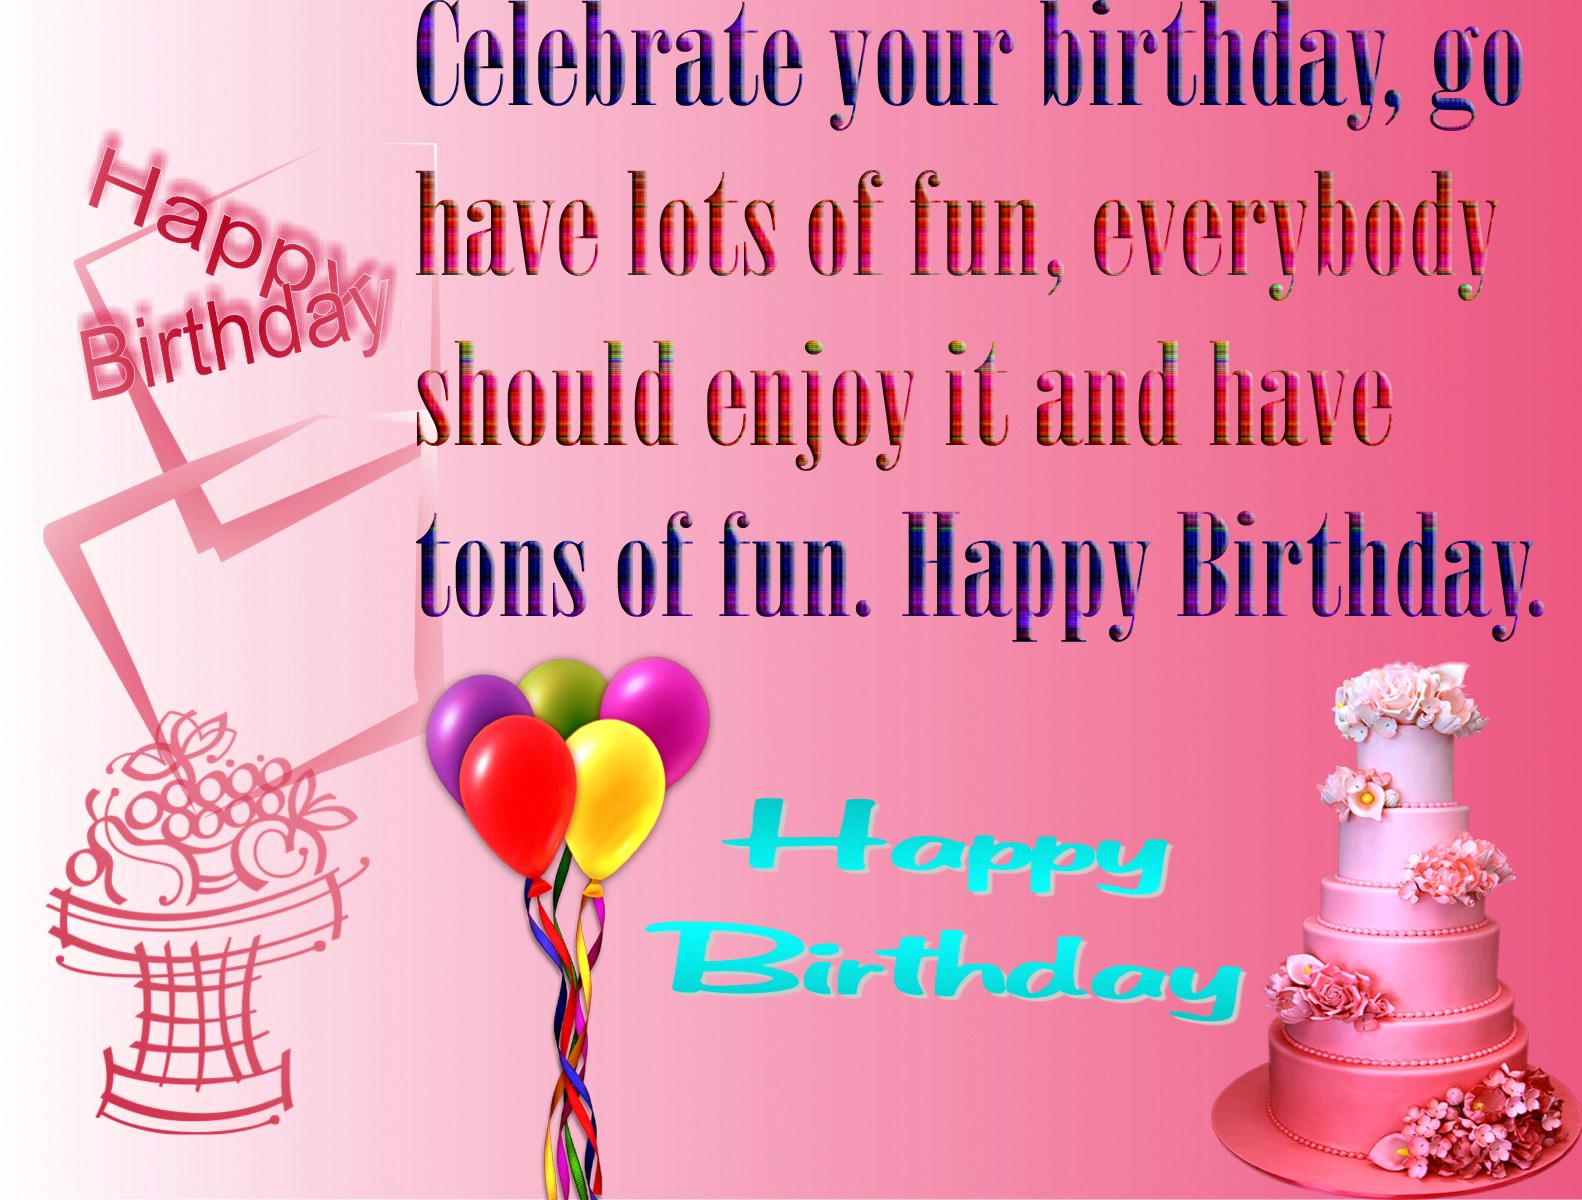 wish your gf bf with romantic birthday messages and quotes new 1582x1200